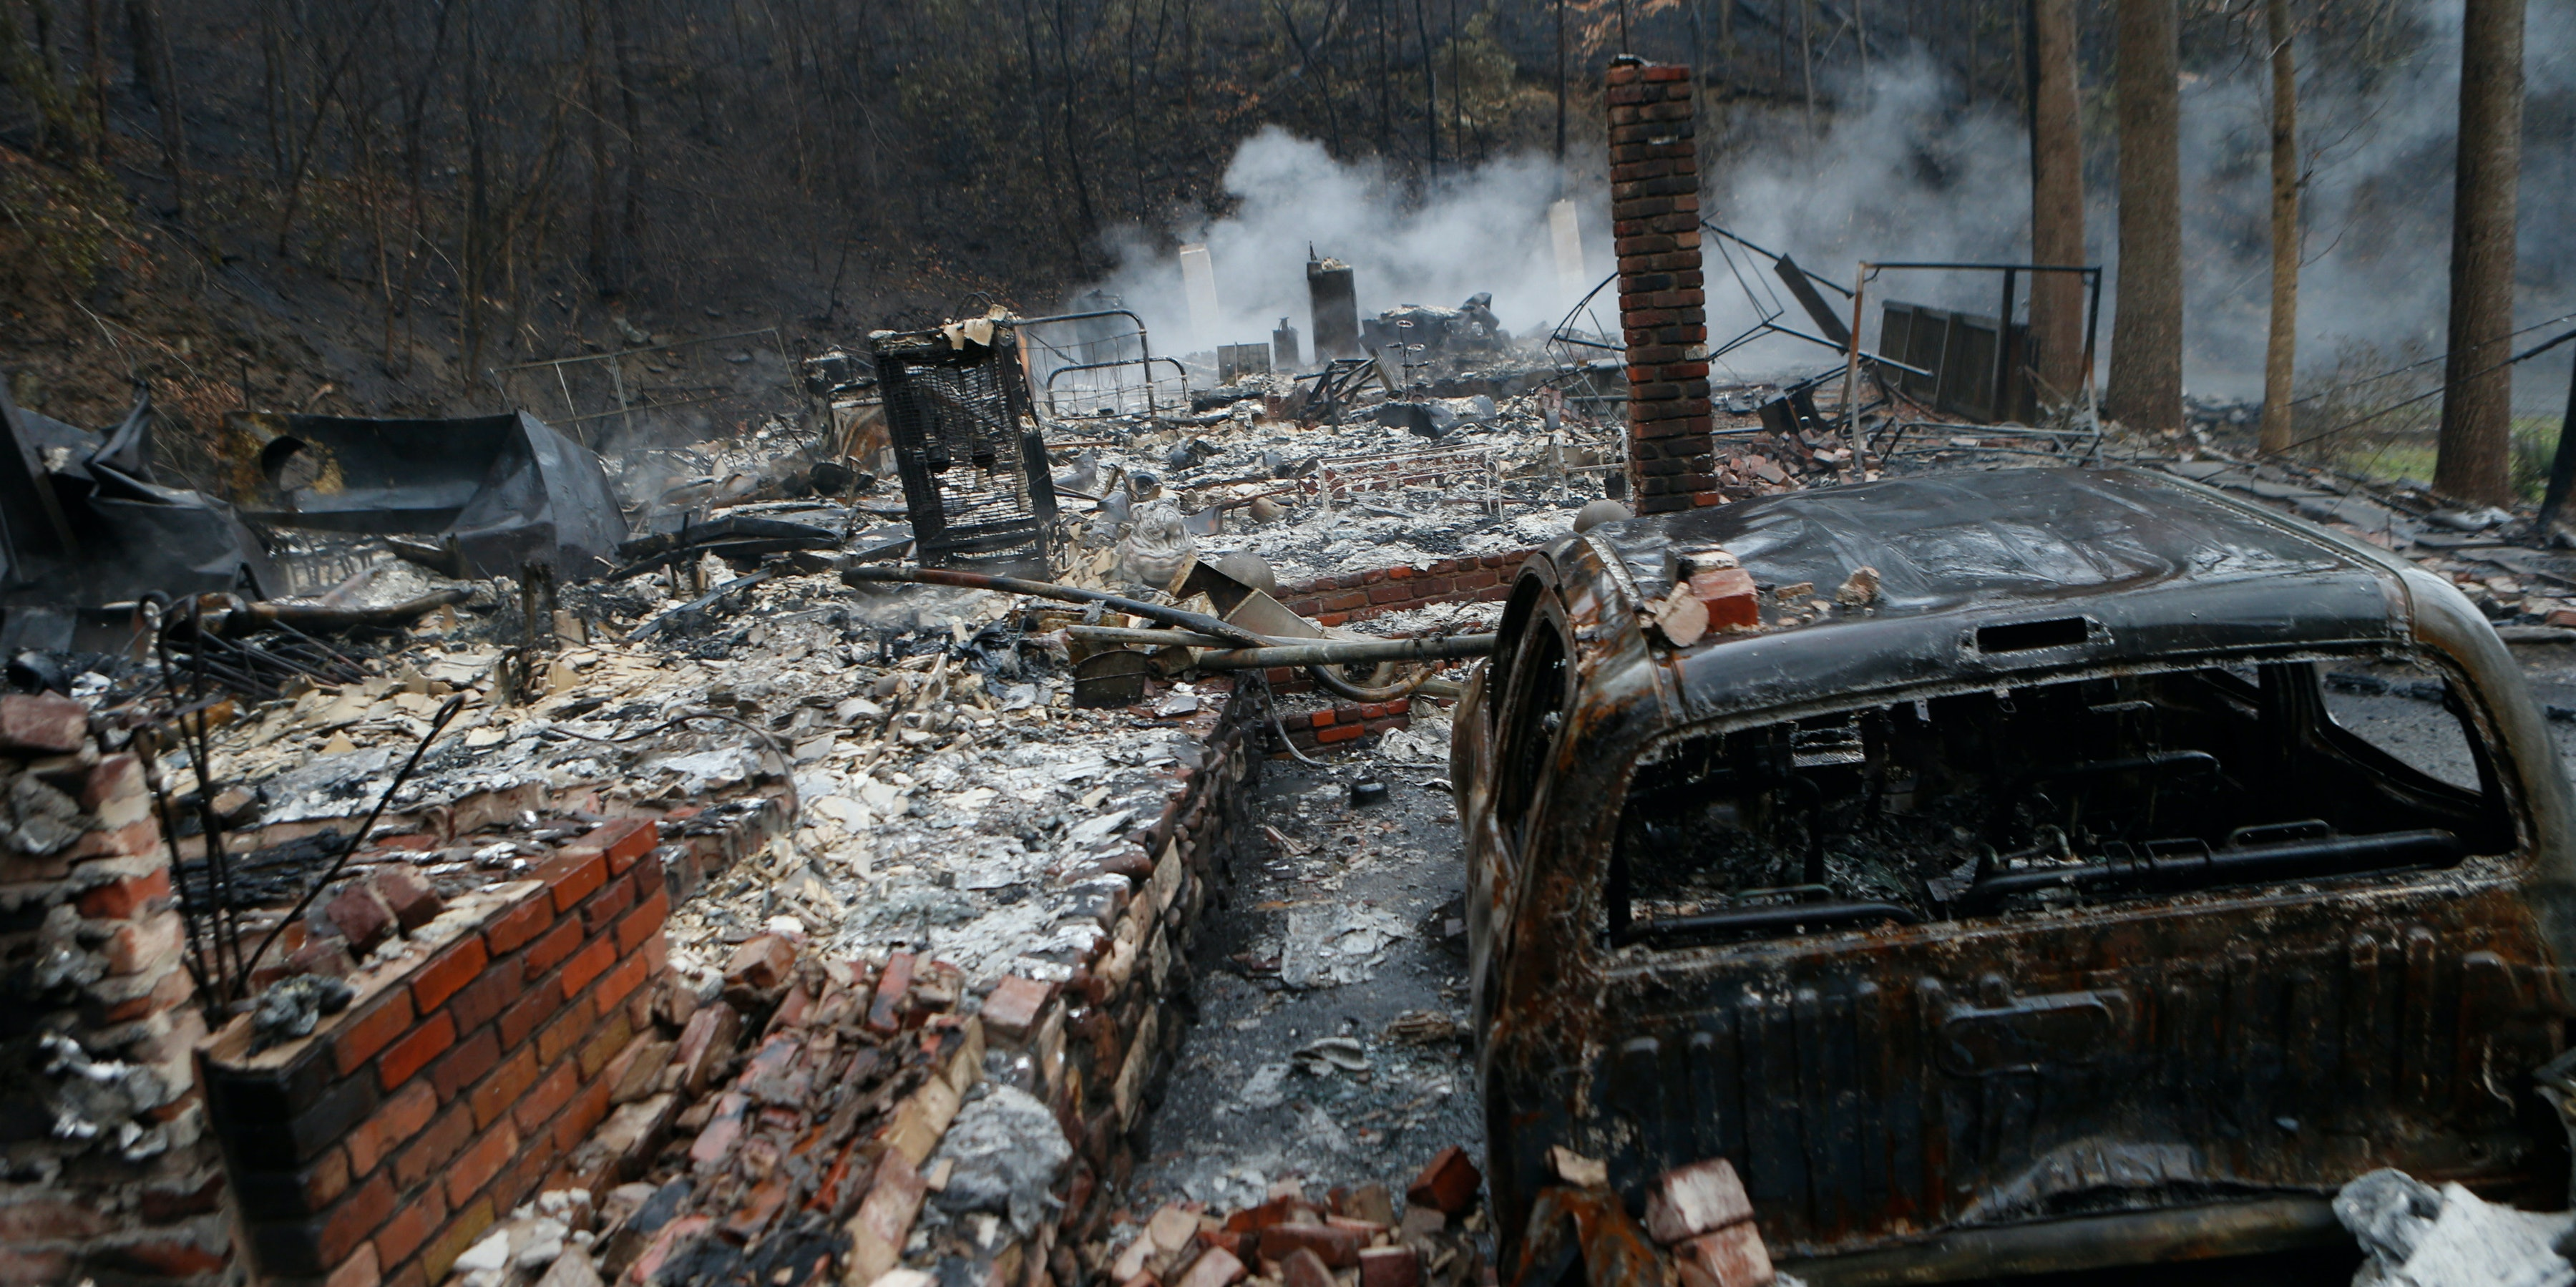 A home destroyed by the wildfire that swept through Gatlinburg, Tennessee.